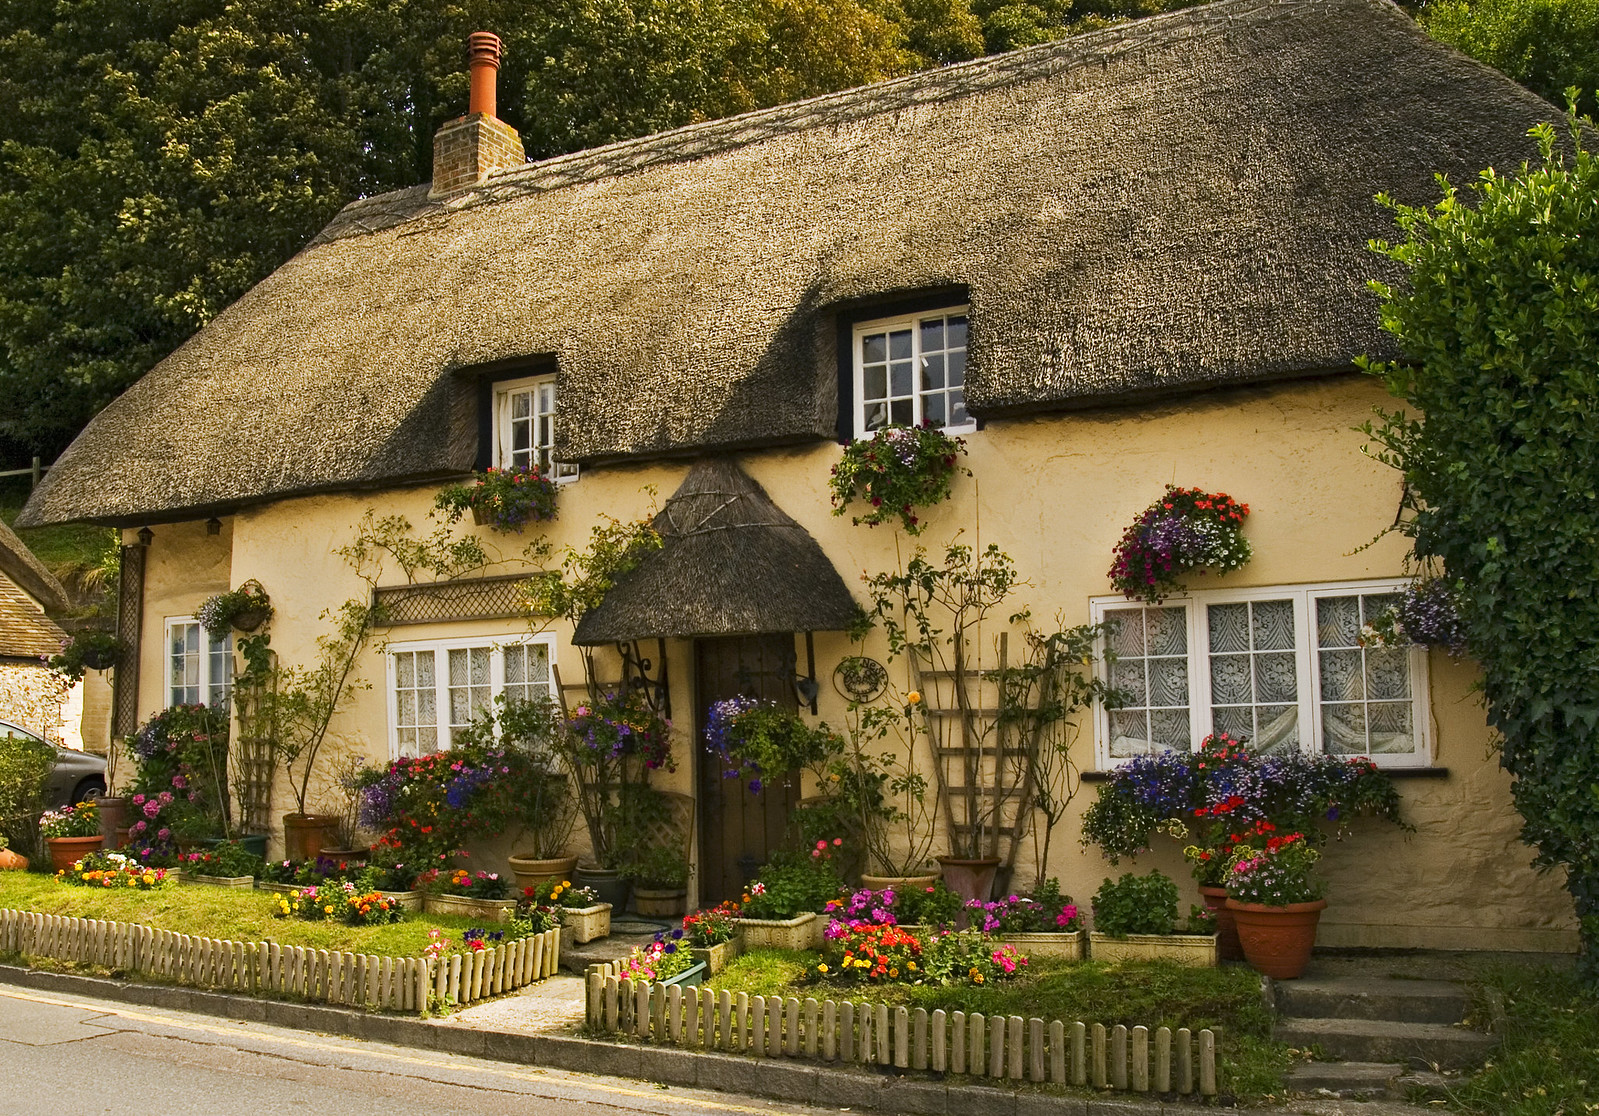 Cottage at West Lulworth, Dorset. Credit Anguskirk